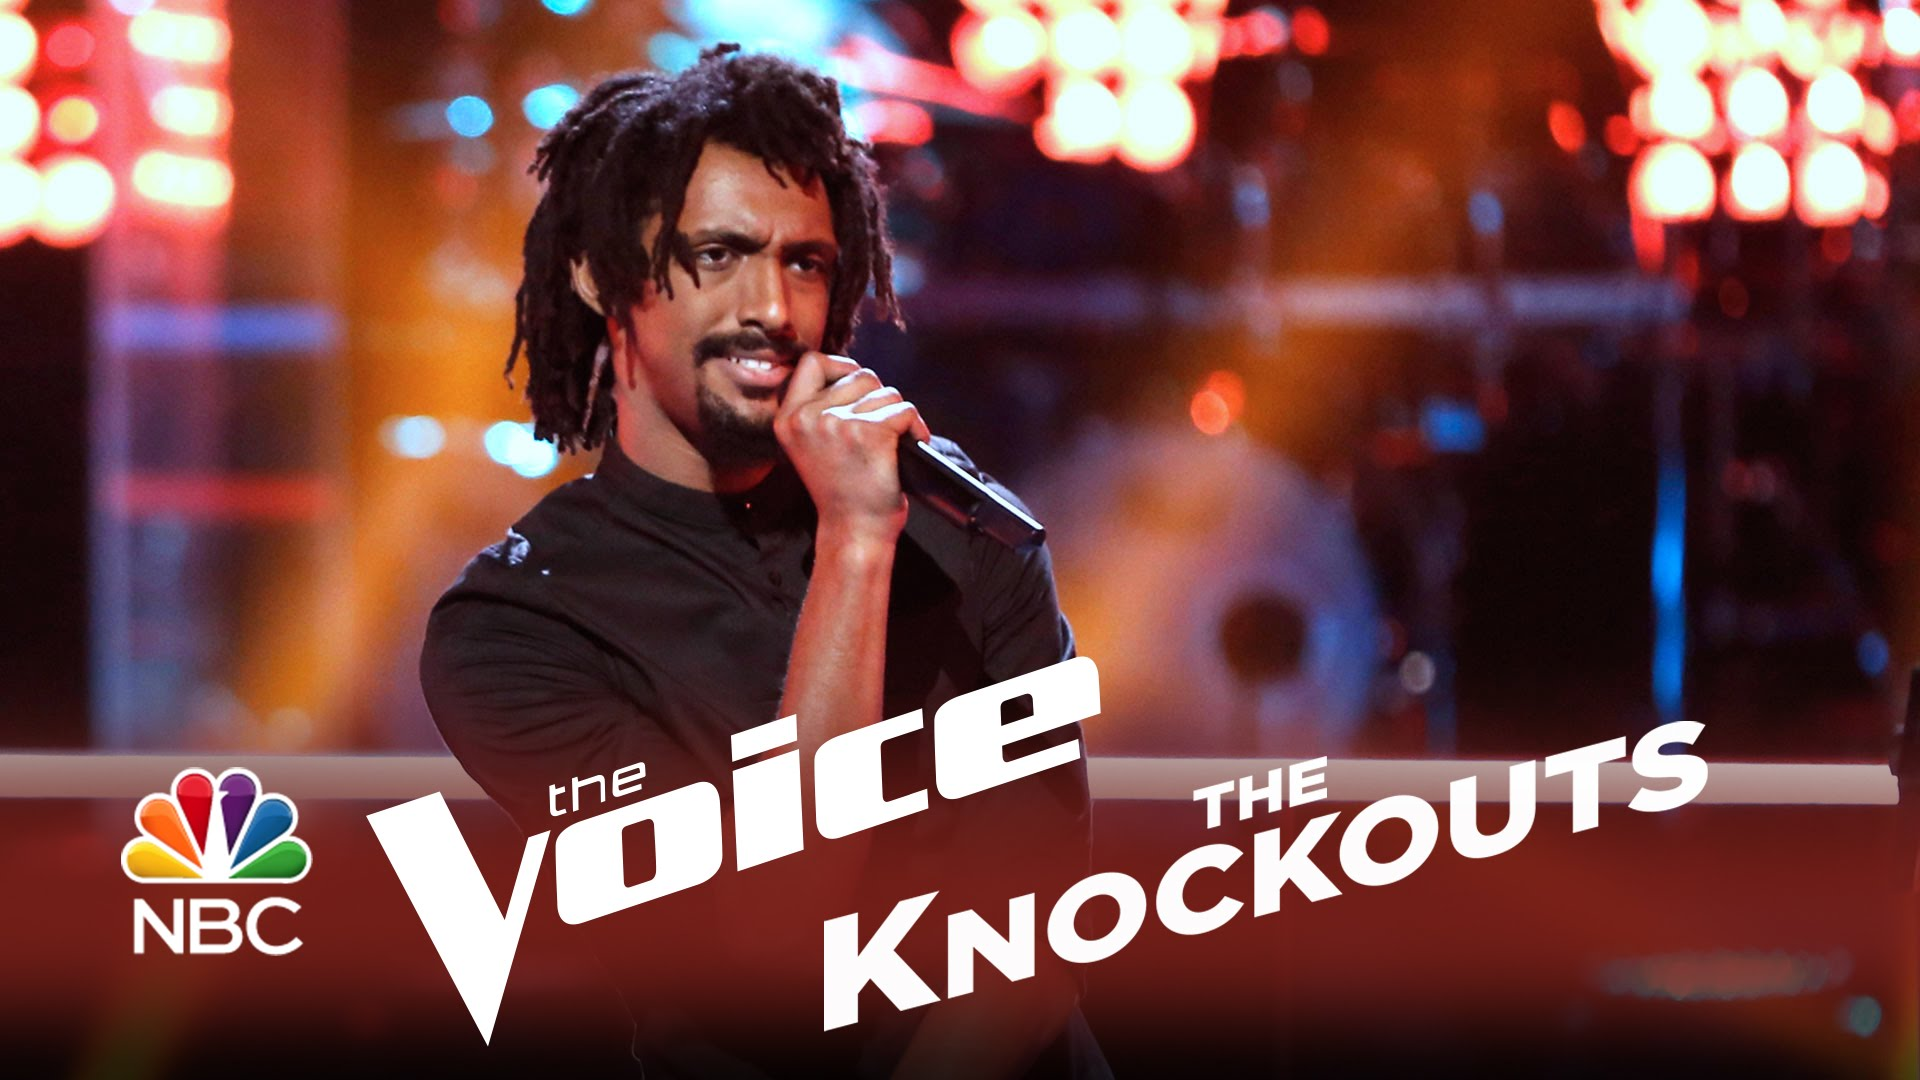 The Voice 2014 - Knockouts - Menlik Zergabachew Continues to Impress the Voice